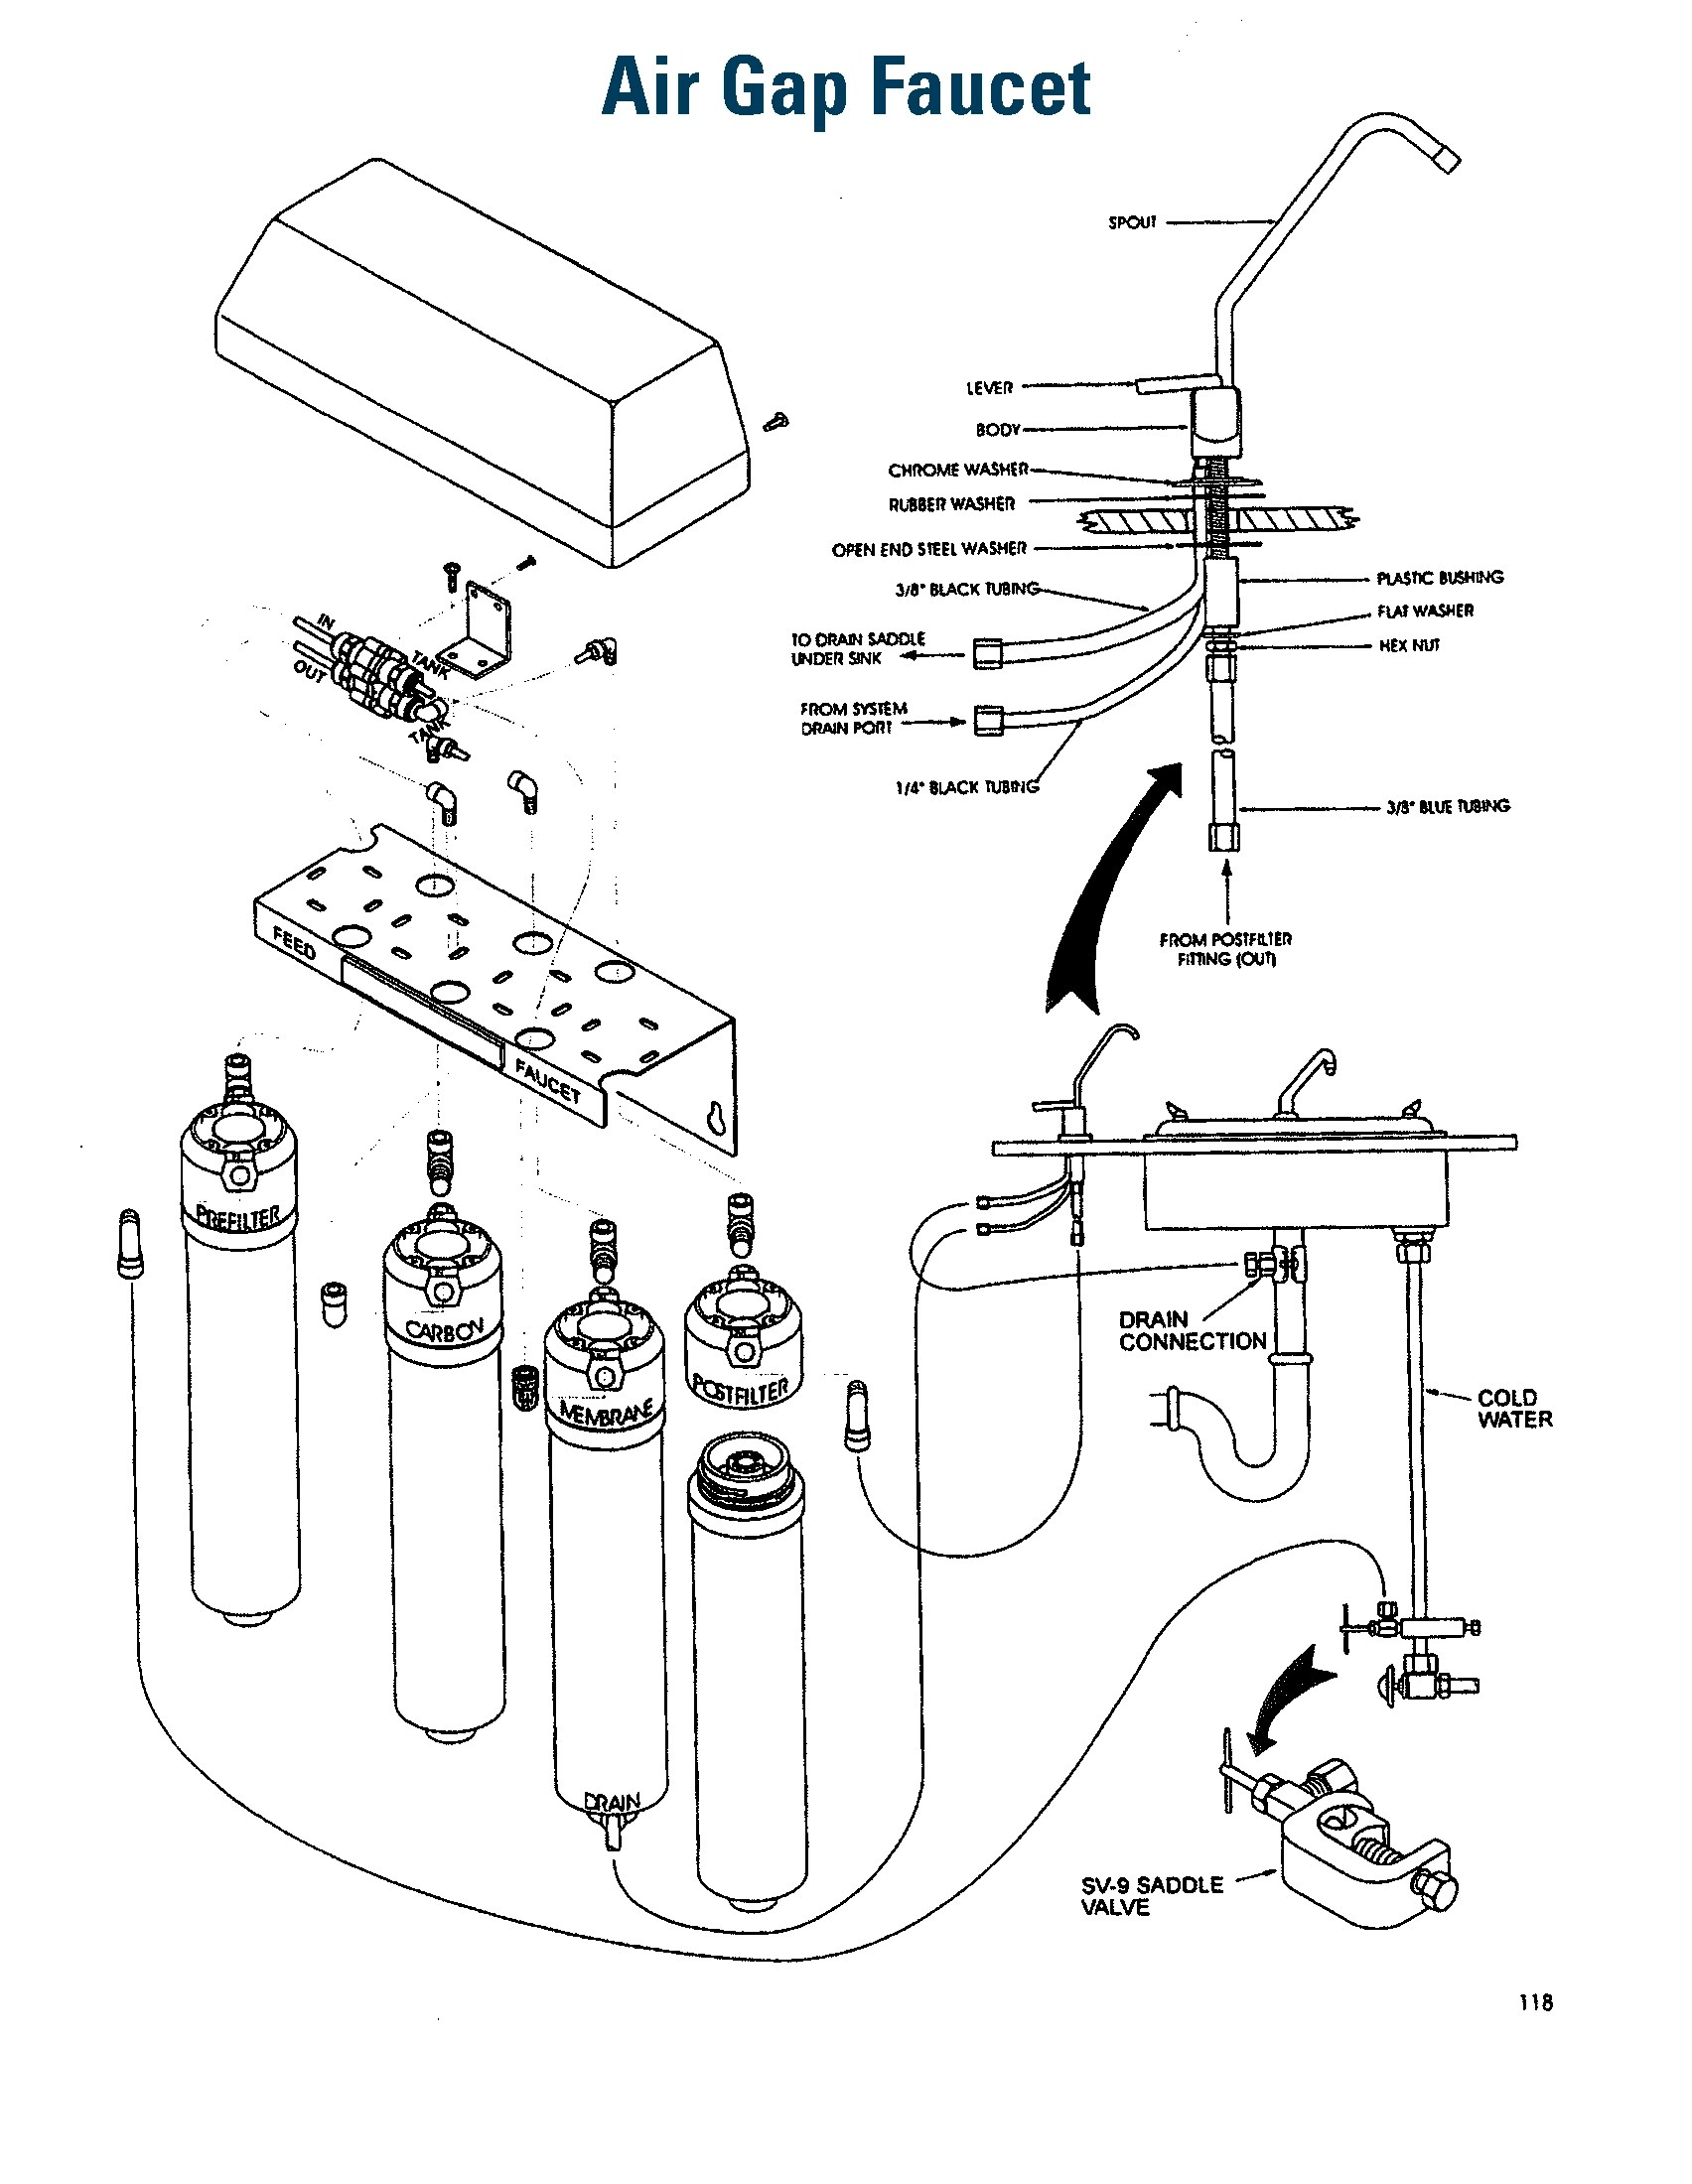 hight resolution of culligan reverse osmosis system diagram auto electrical wiring diagram mortise lock diagram group picture image by tag keywordpictures